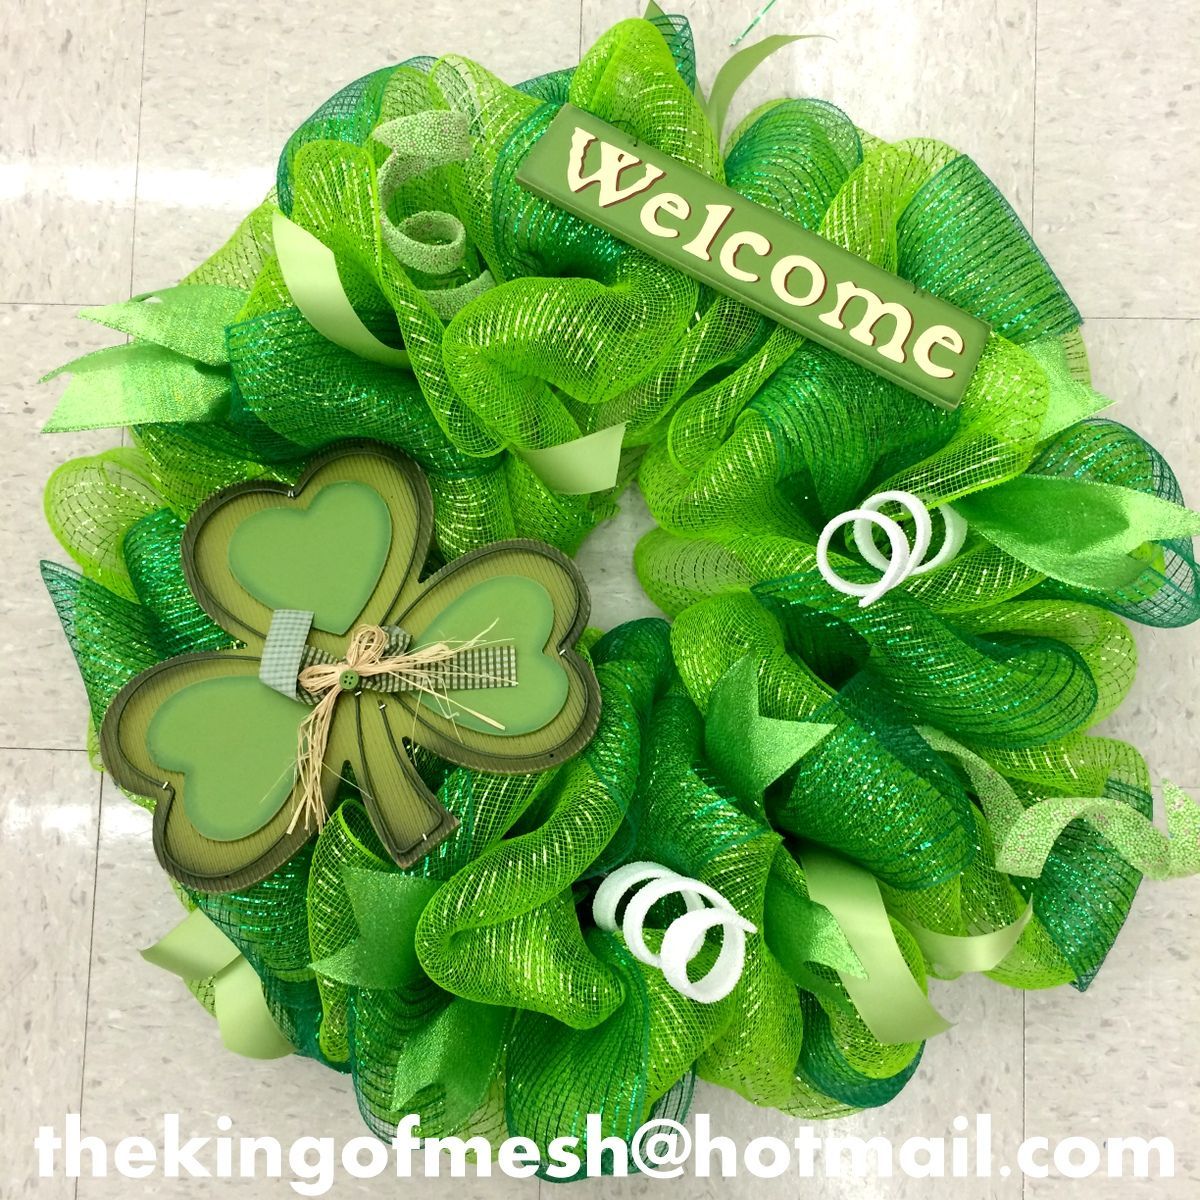 Create your own St Patrick's Mesh Wreath or order yours at: thekingofmesh@hotmail. com - Introducing my newest #meshwreath from latest #StPatricks collection. I got all my supplies at @MichaelsStores #craftssupplies #decomesh #custom #mesh #michaelsstores @thekingofmesh #homedecor #polydecomesh #green #shamrock #ribbon